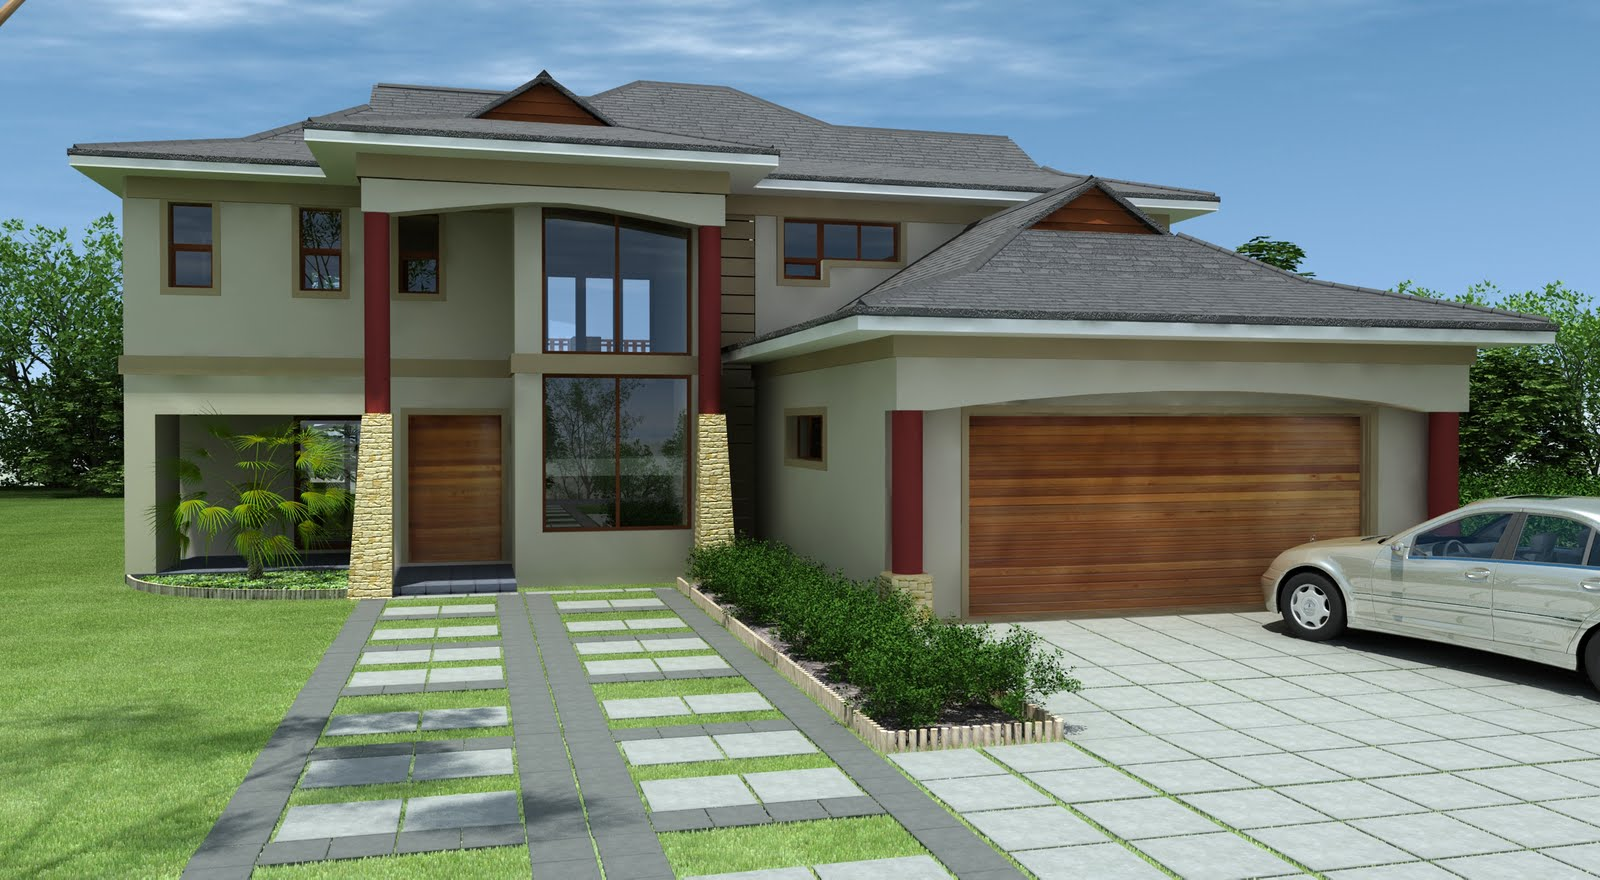 Dream golf job july 2010 for Estate home plans designs